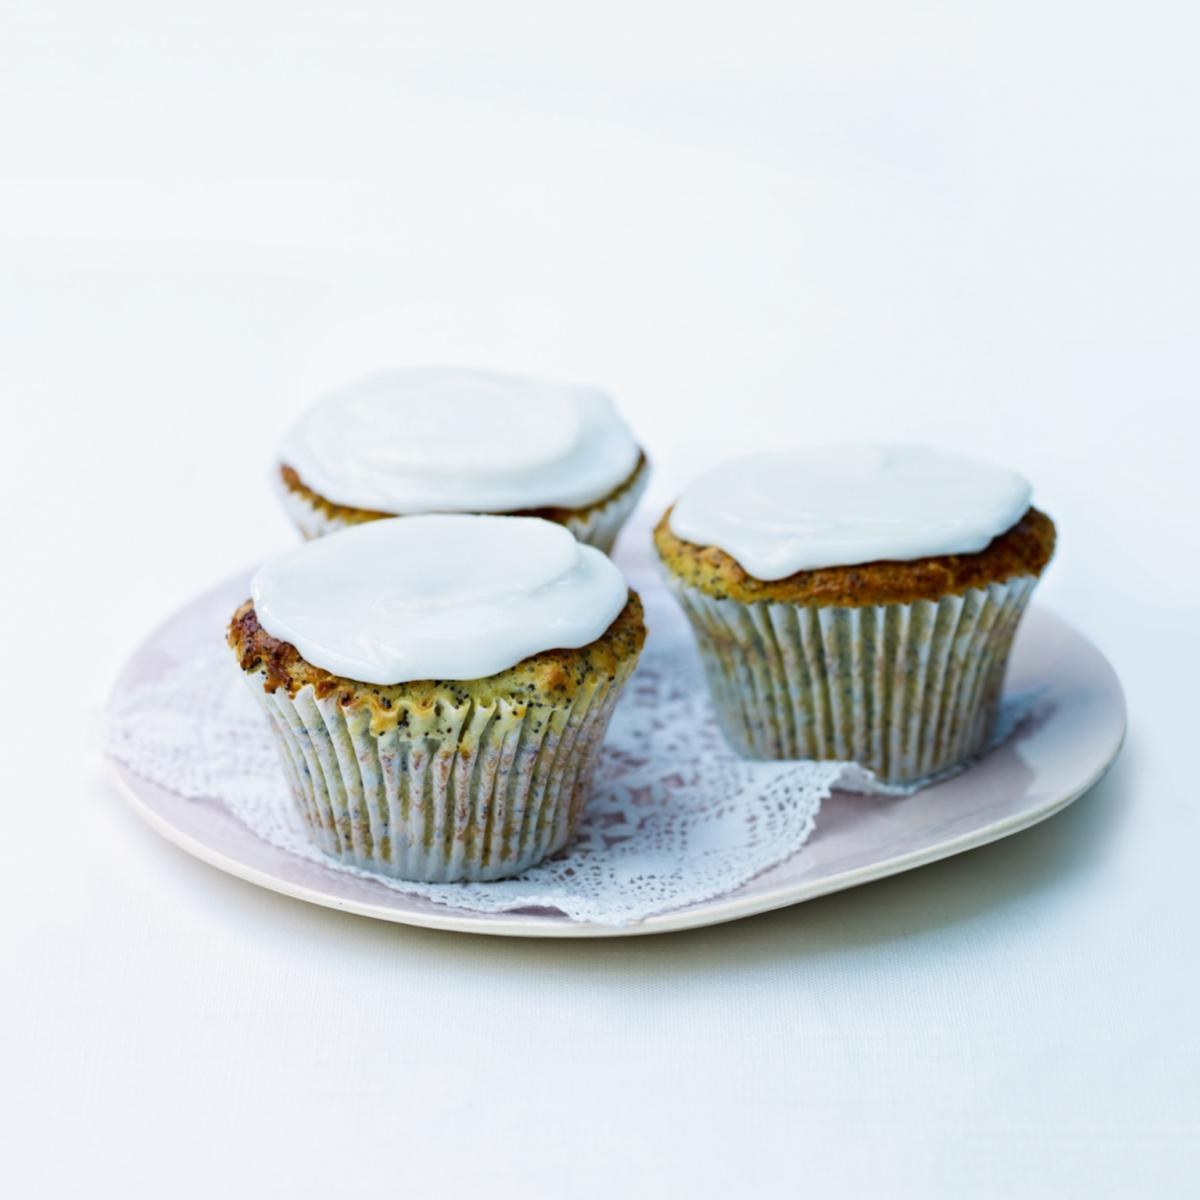 A picture of Delia's Iced Lemon and Poppy Seed Muffins recipe